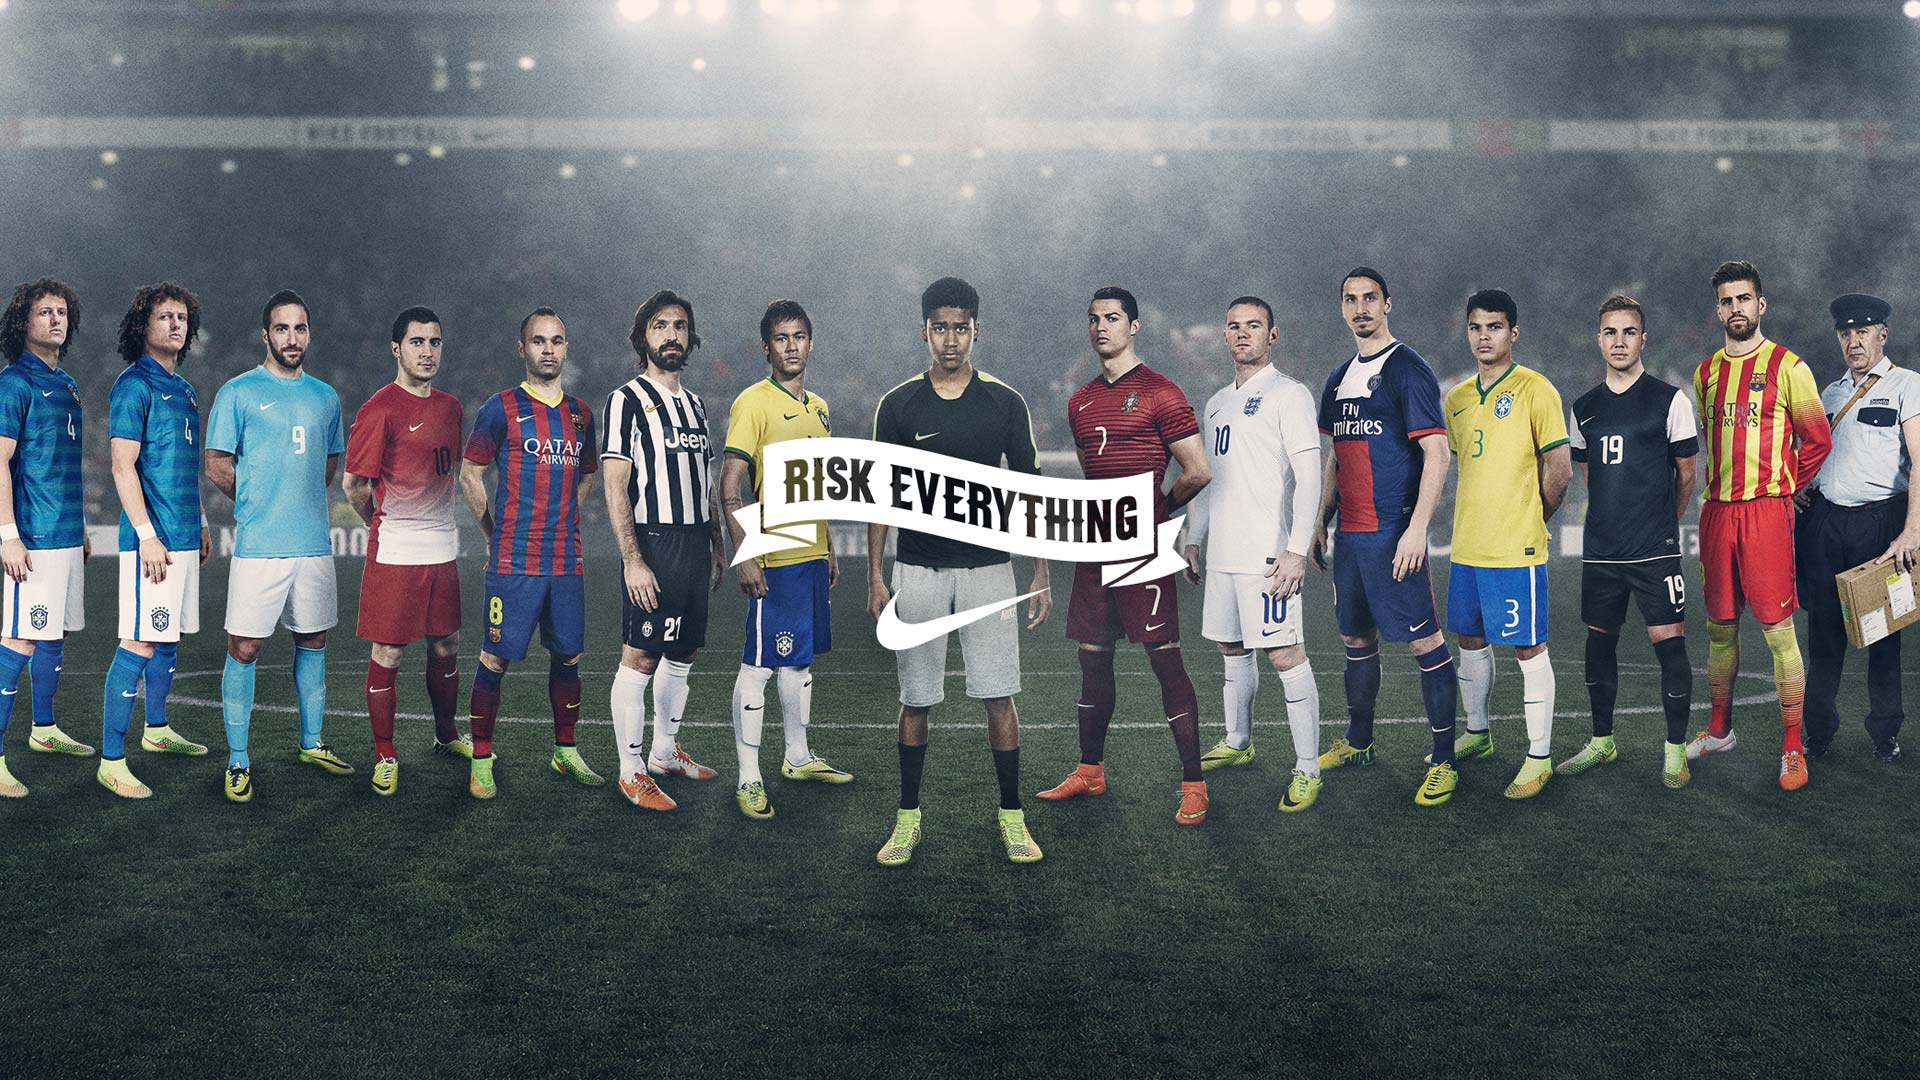 Nike Soccer creates epic video to get you ready for 2014 ... Soccer News